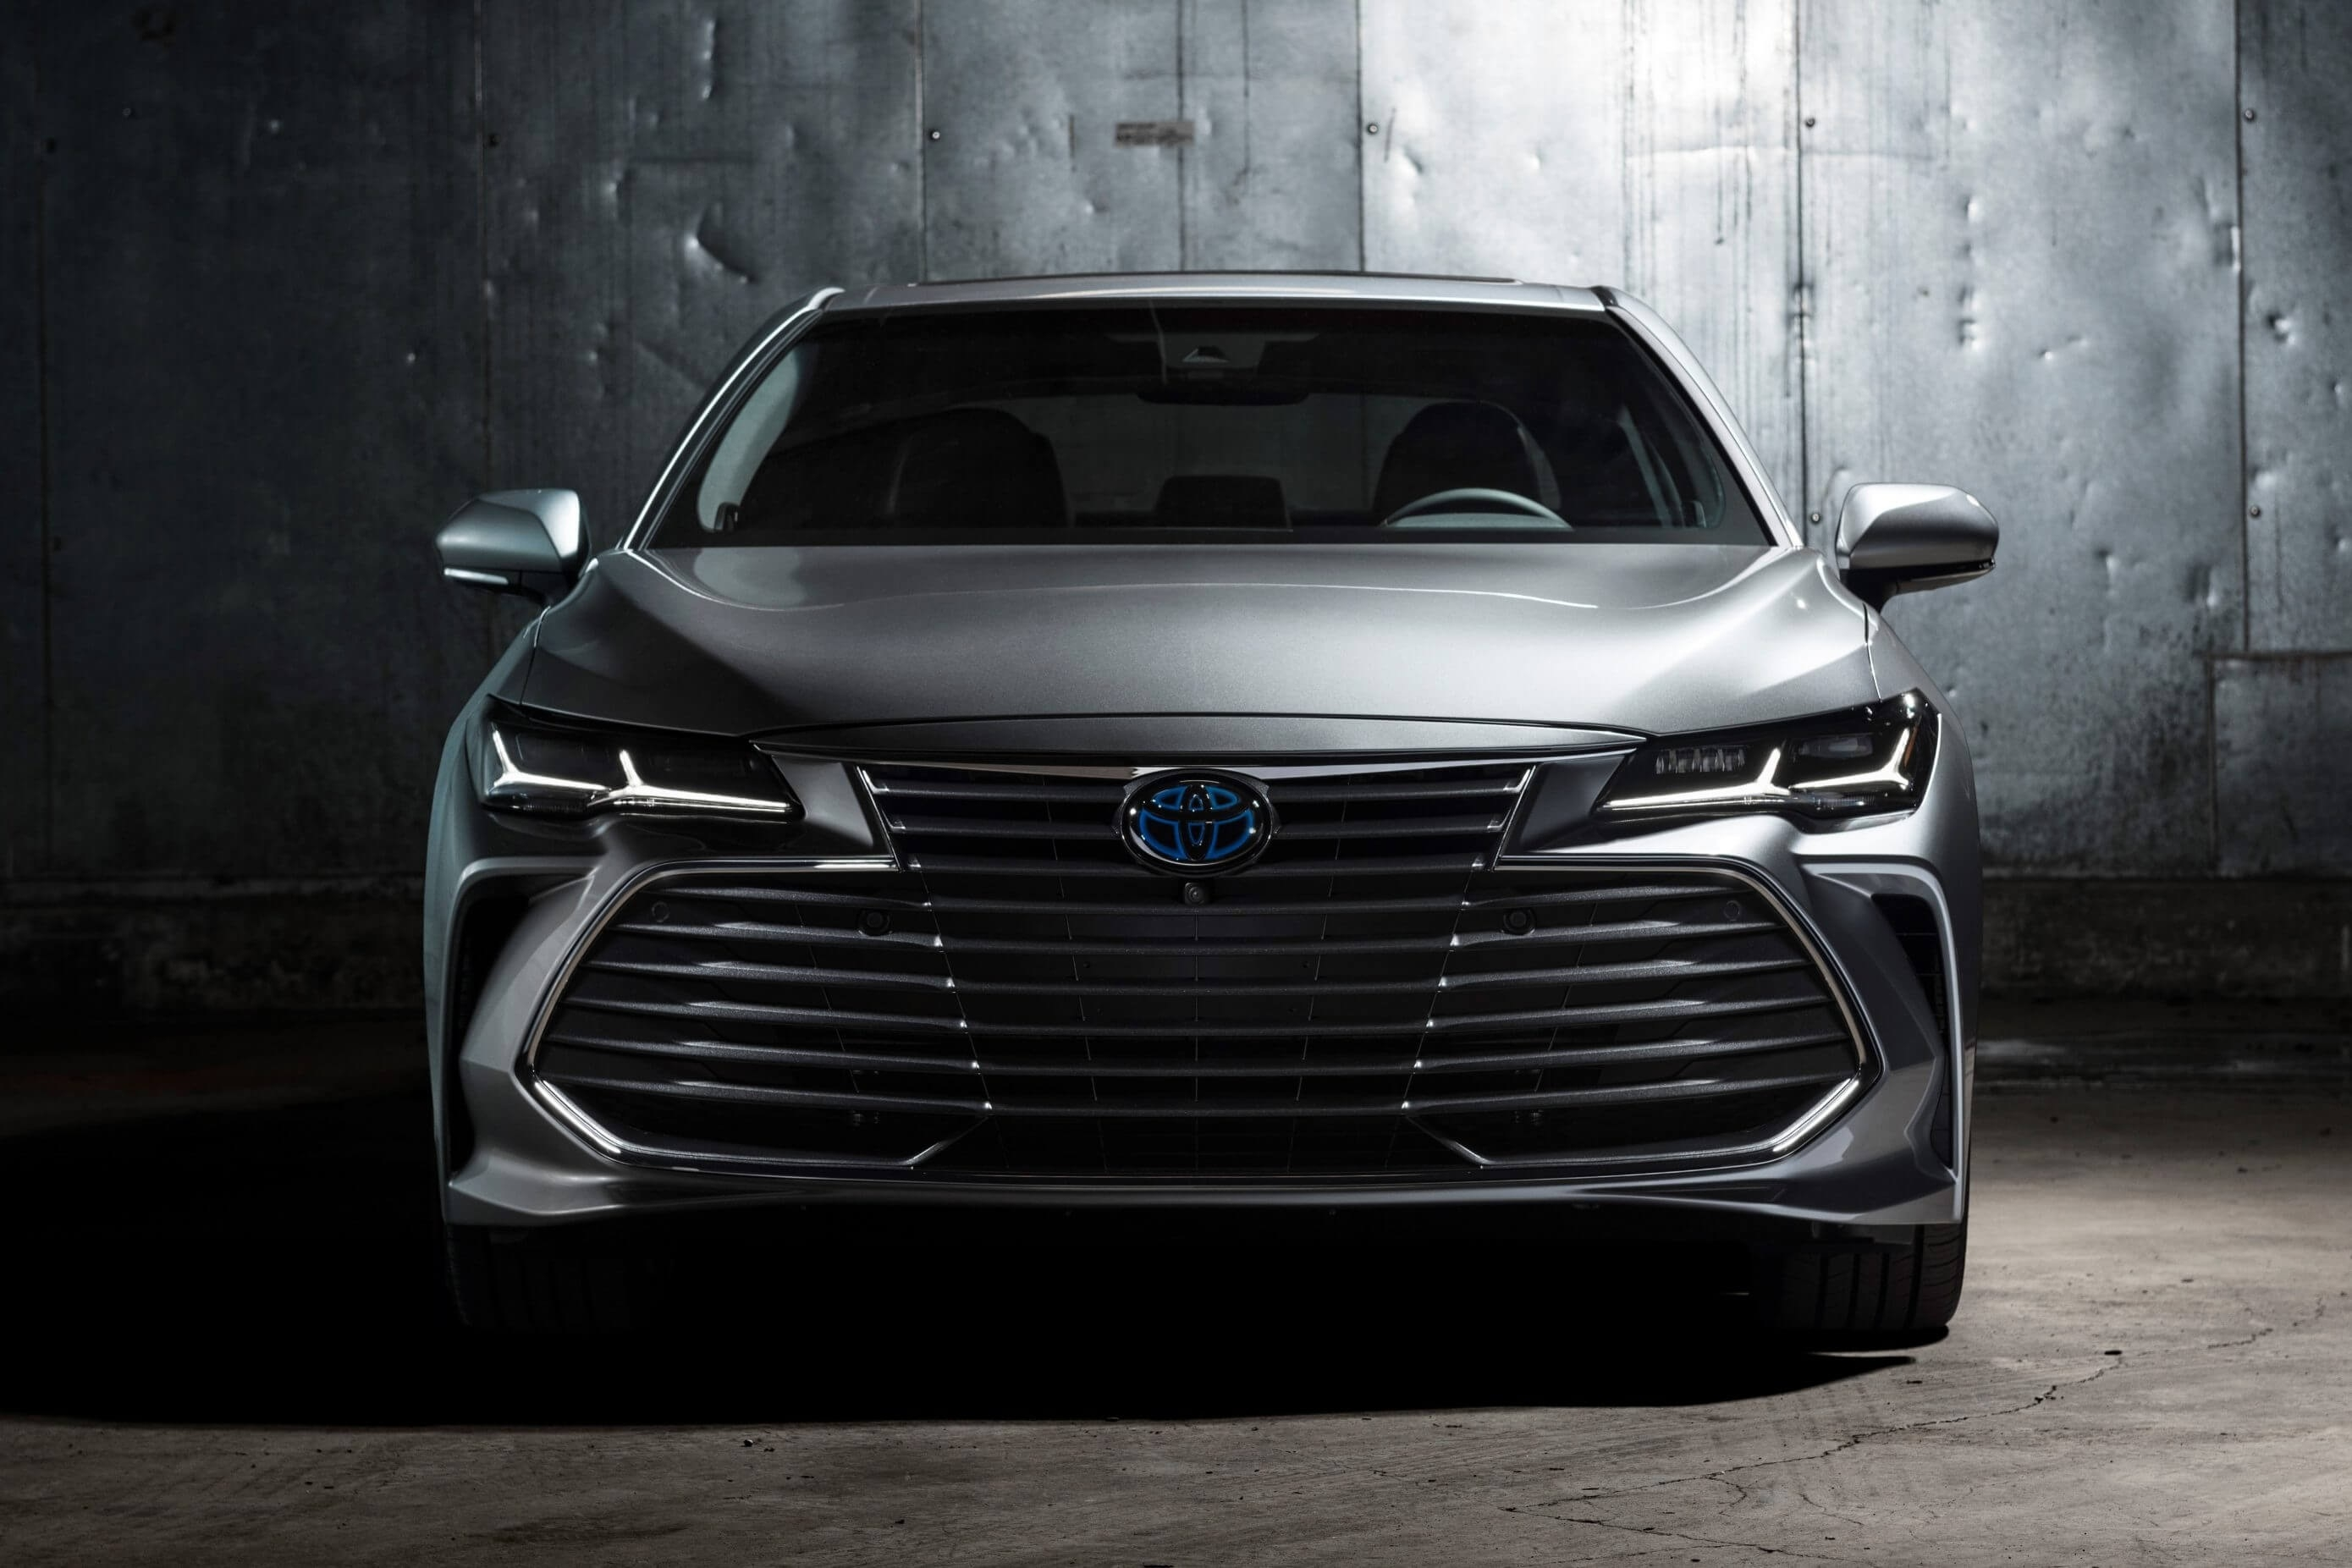 45 All New 2020 Toyota Avalon Hybrid Pricing